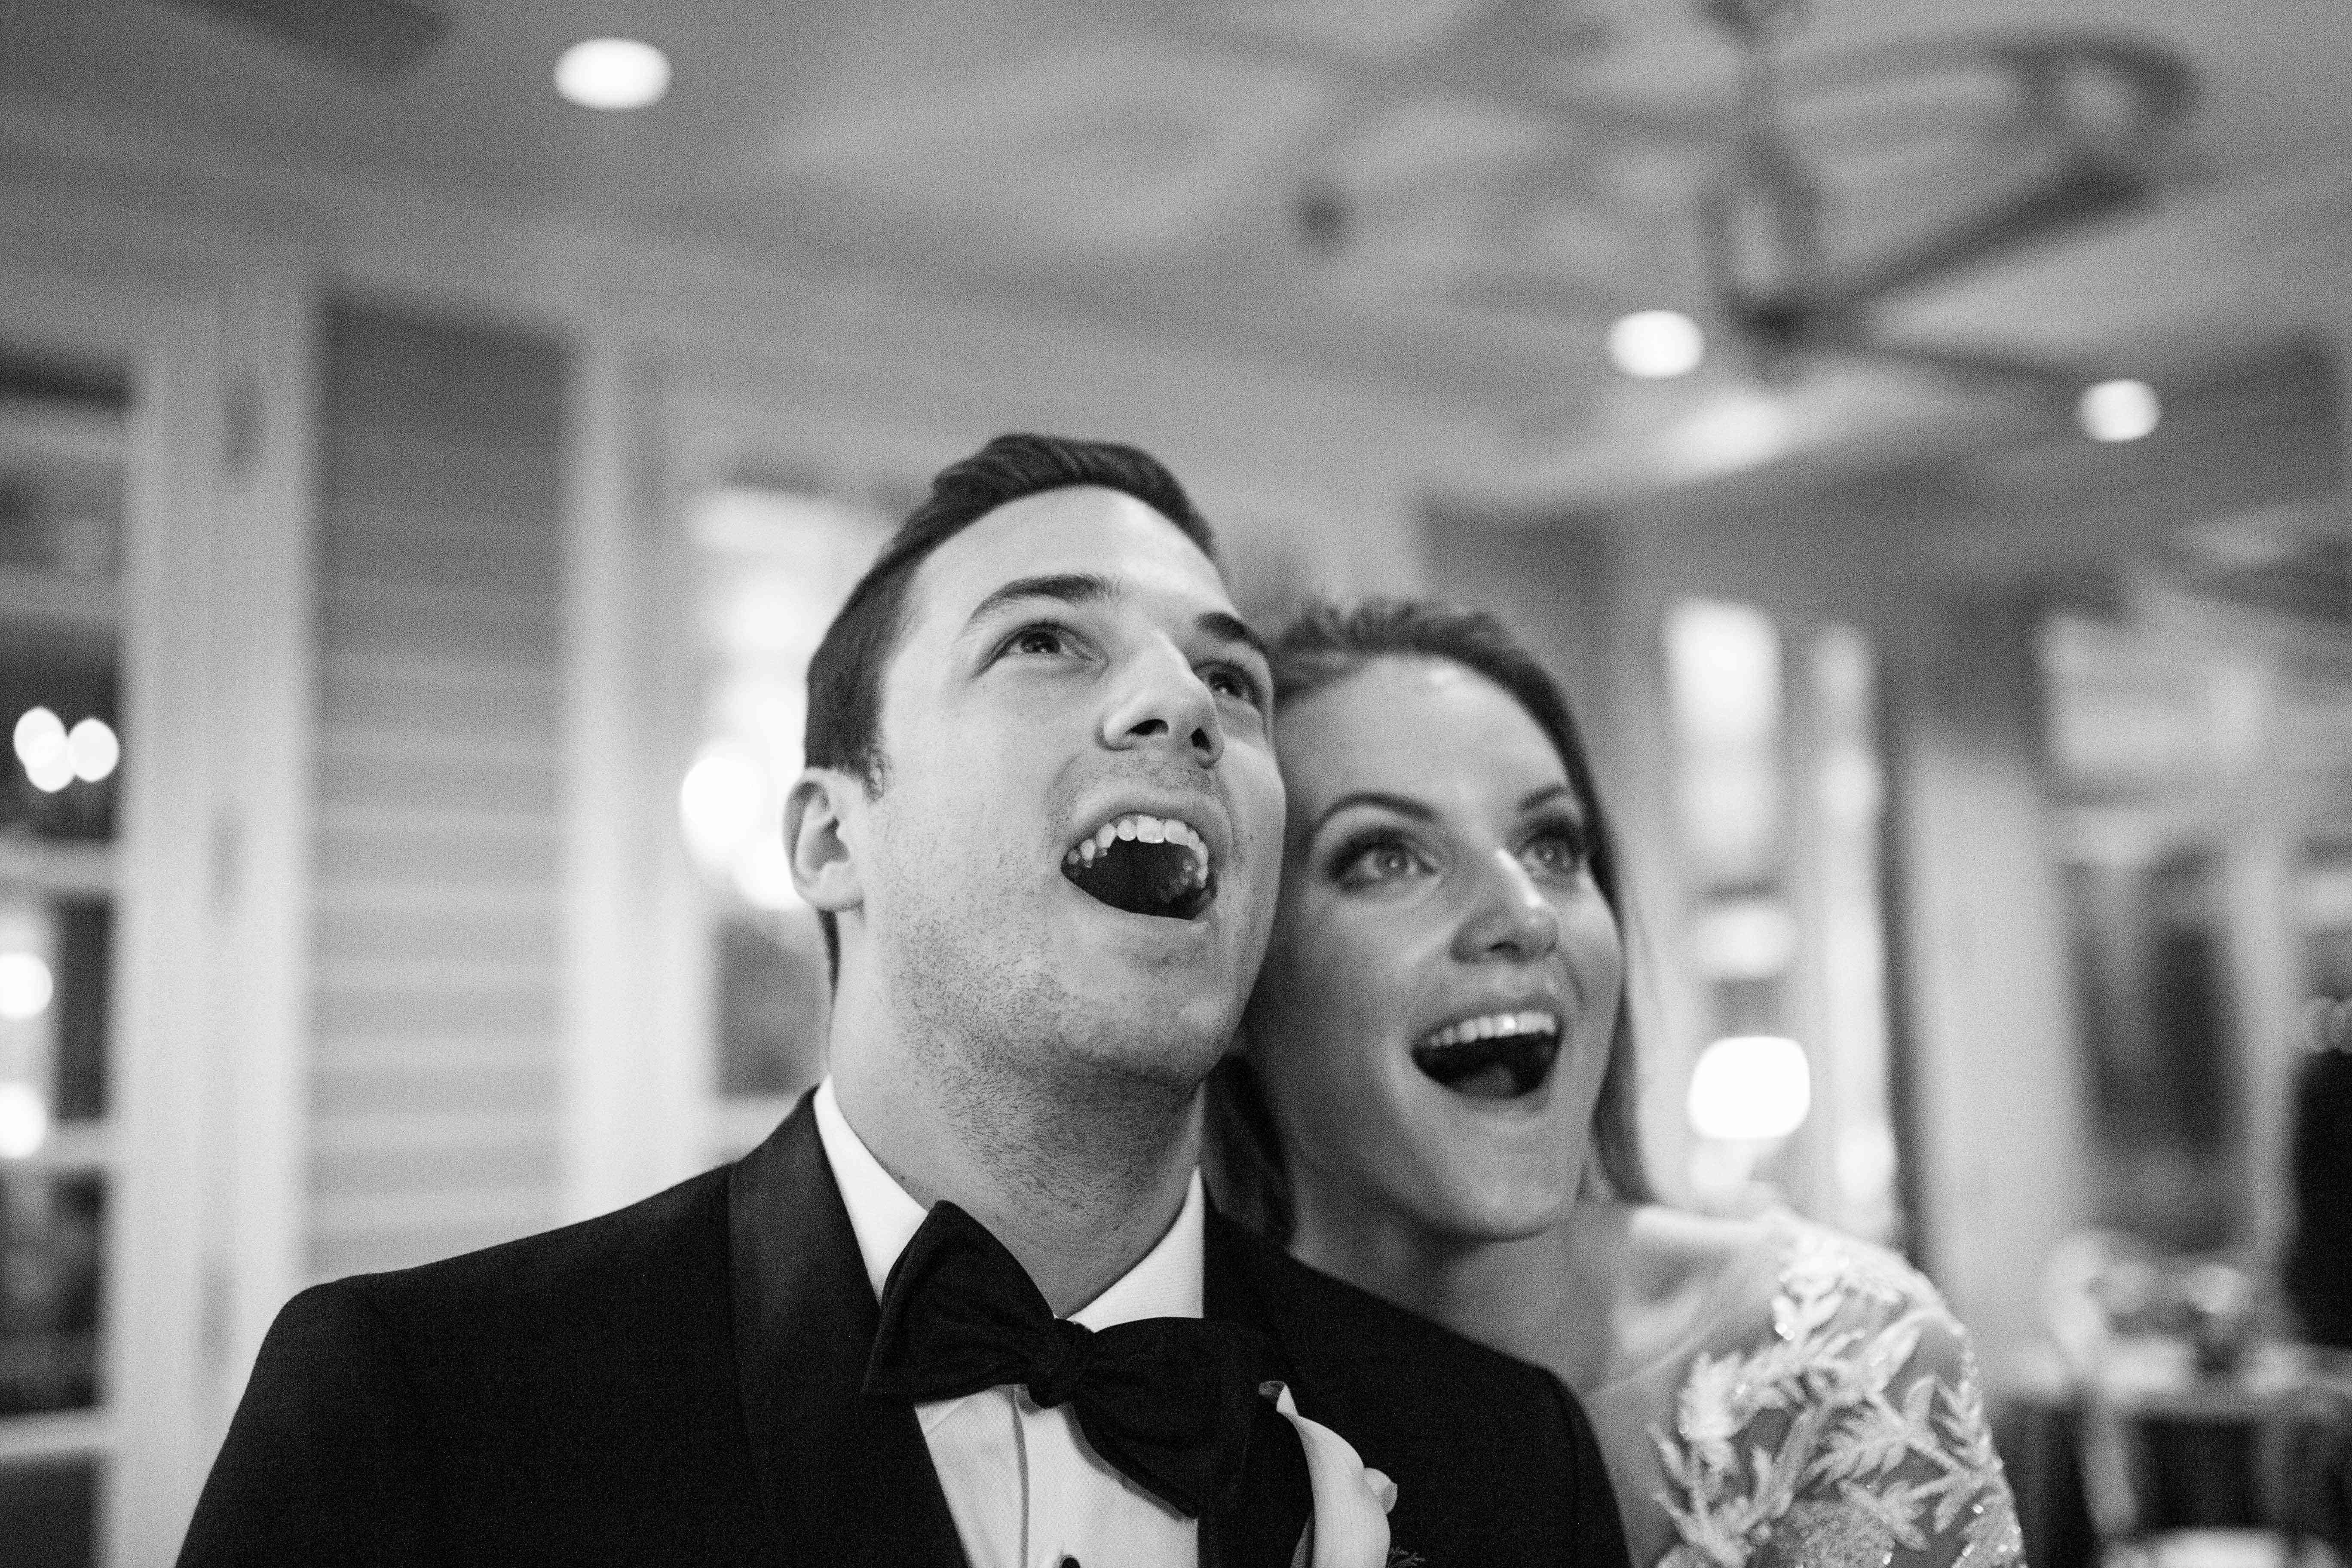 <p>Bride and groom smiling</p><br><br>